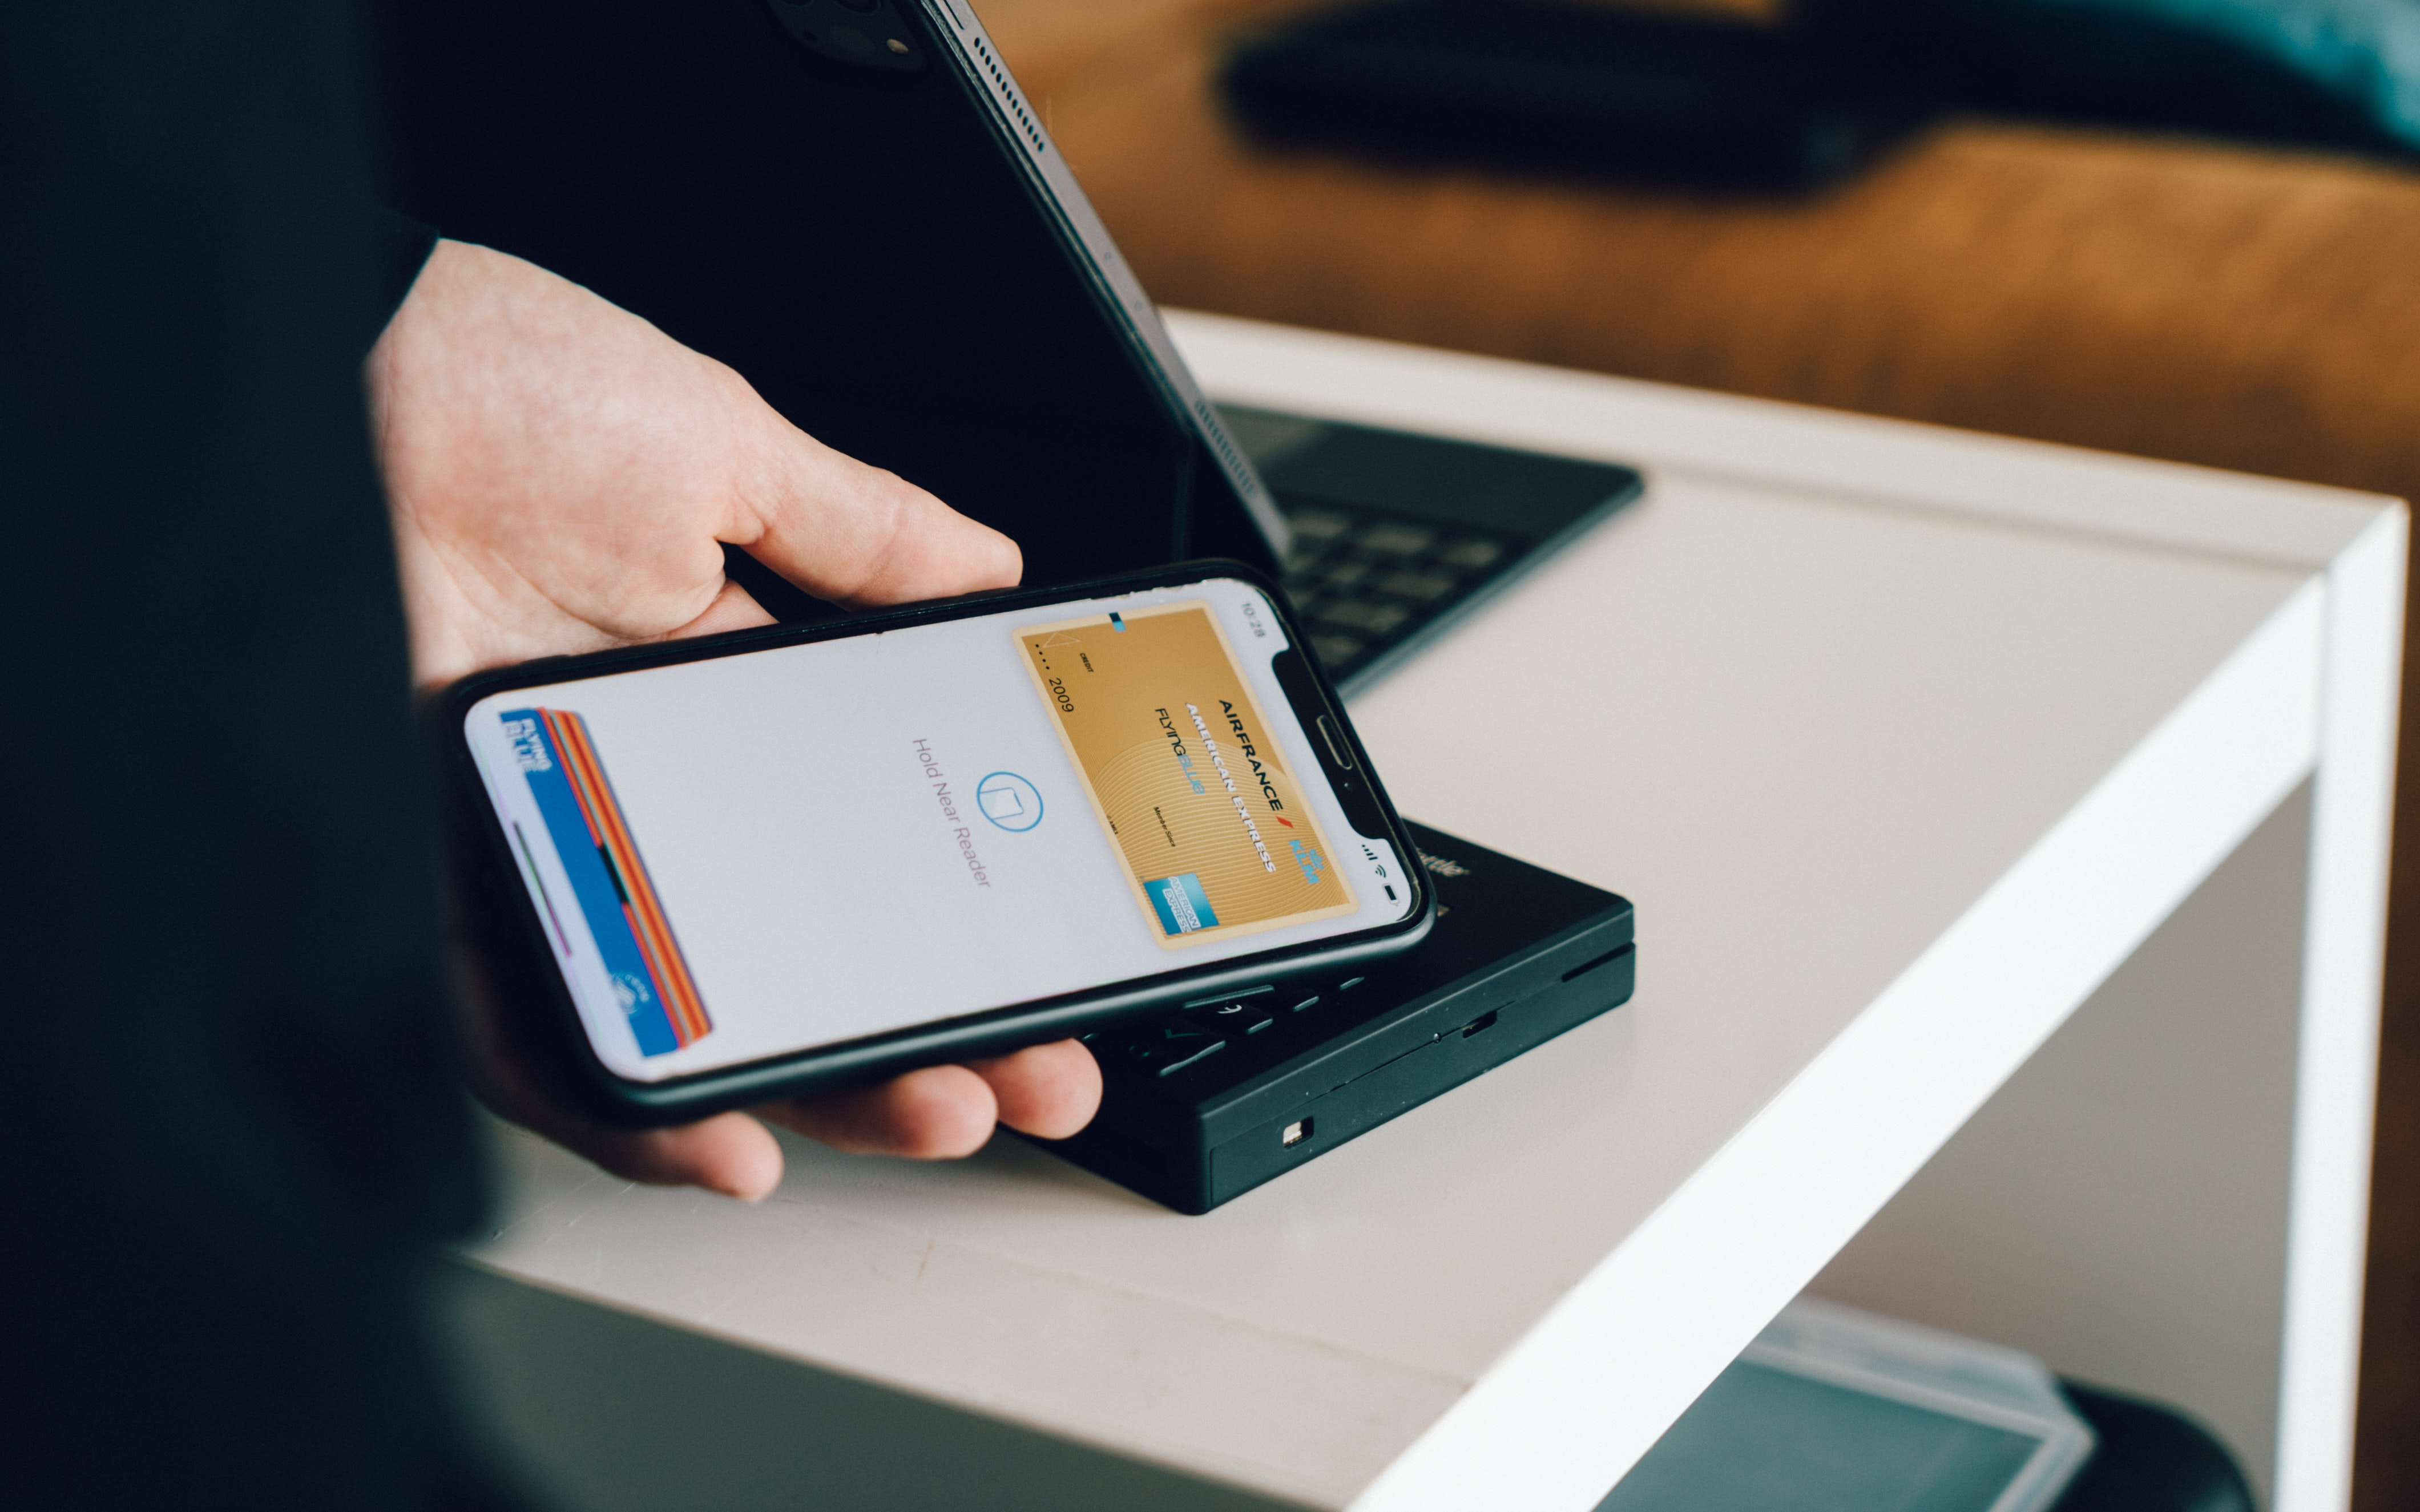 5-out-of-6-face-to-face-card-payments-are-now-fully-contactless-reports-emirates-nbd